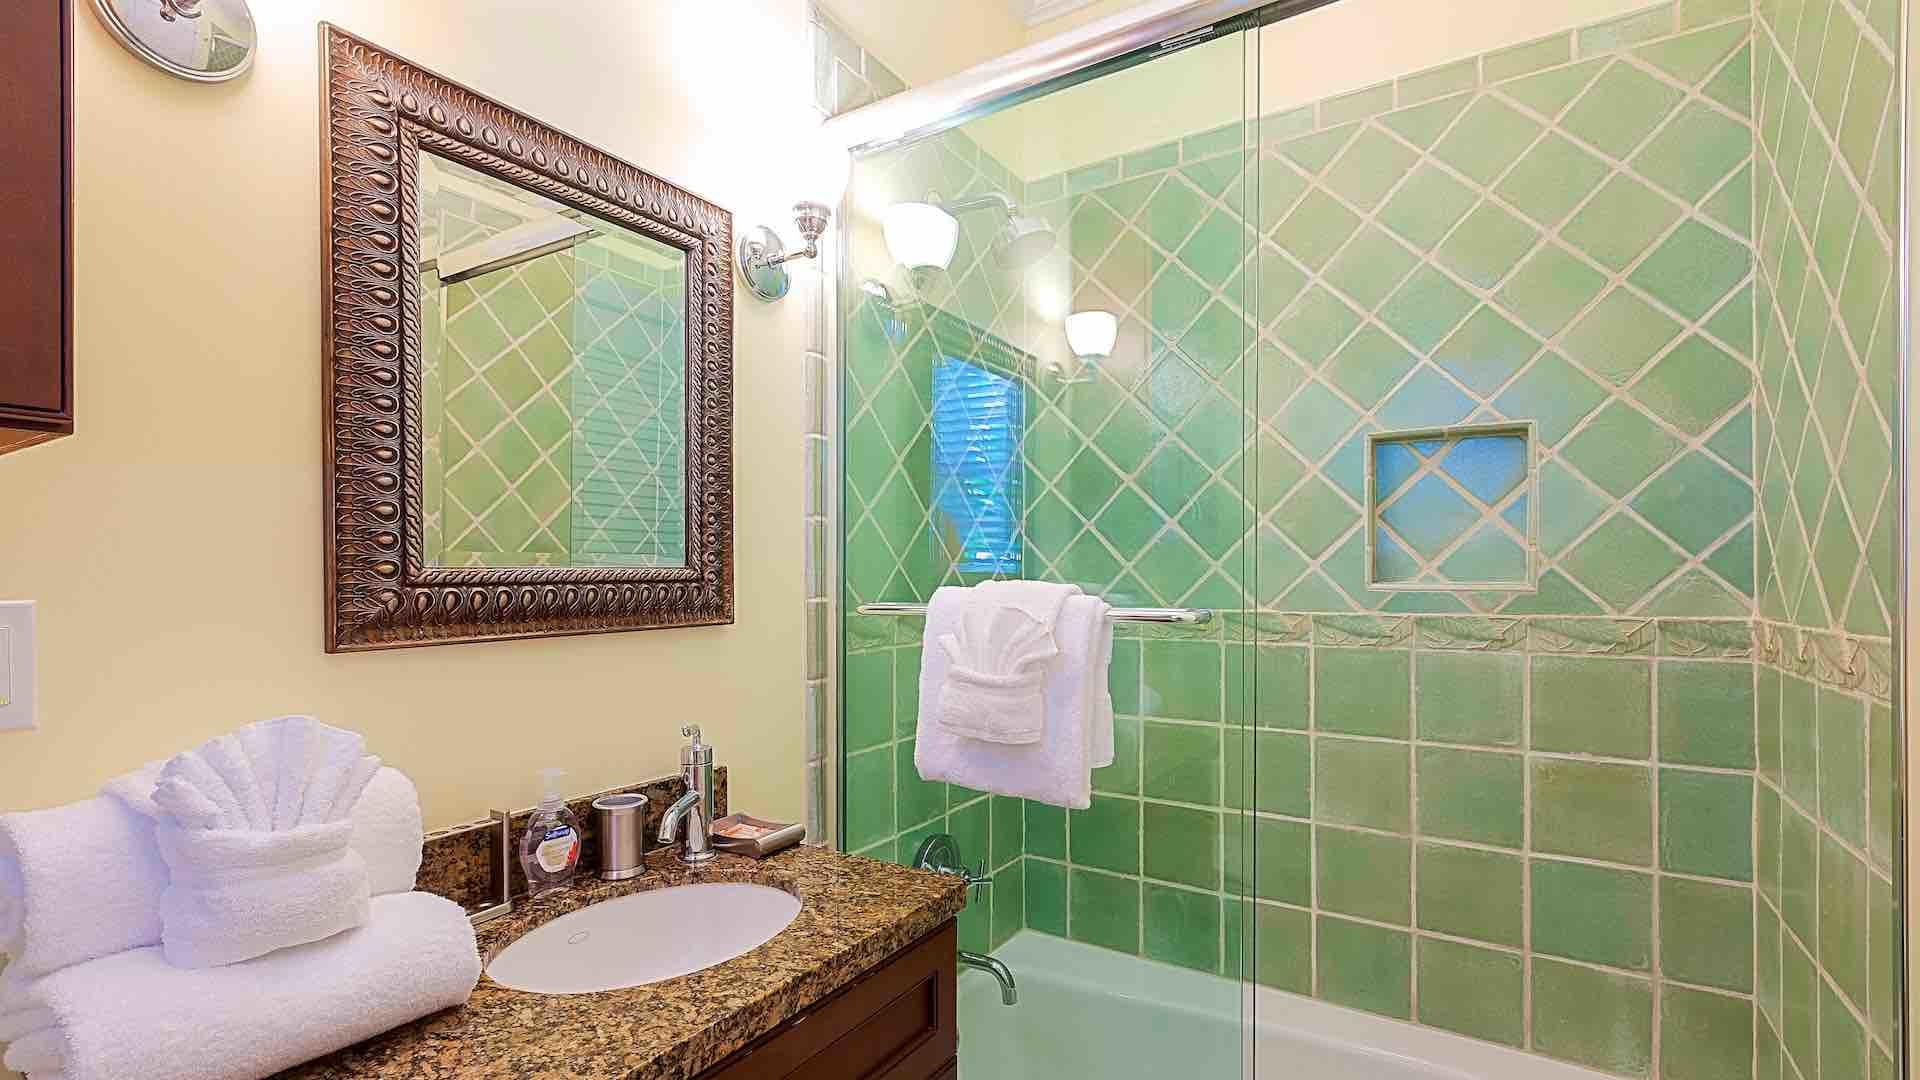 The en suite bathroom has a glass shower and tub combo...